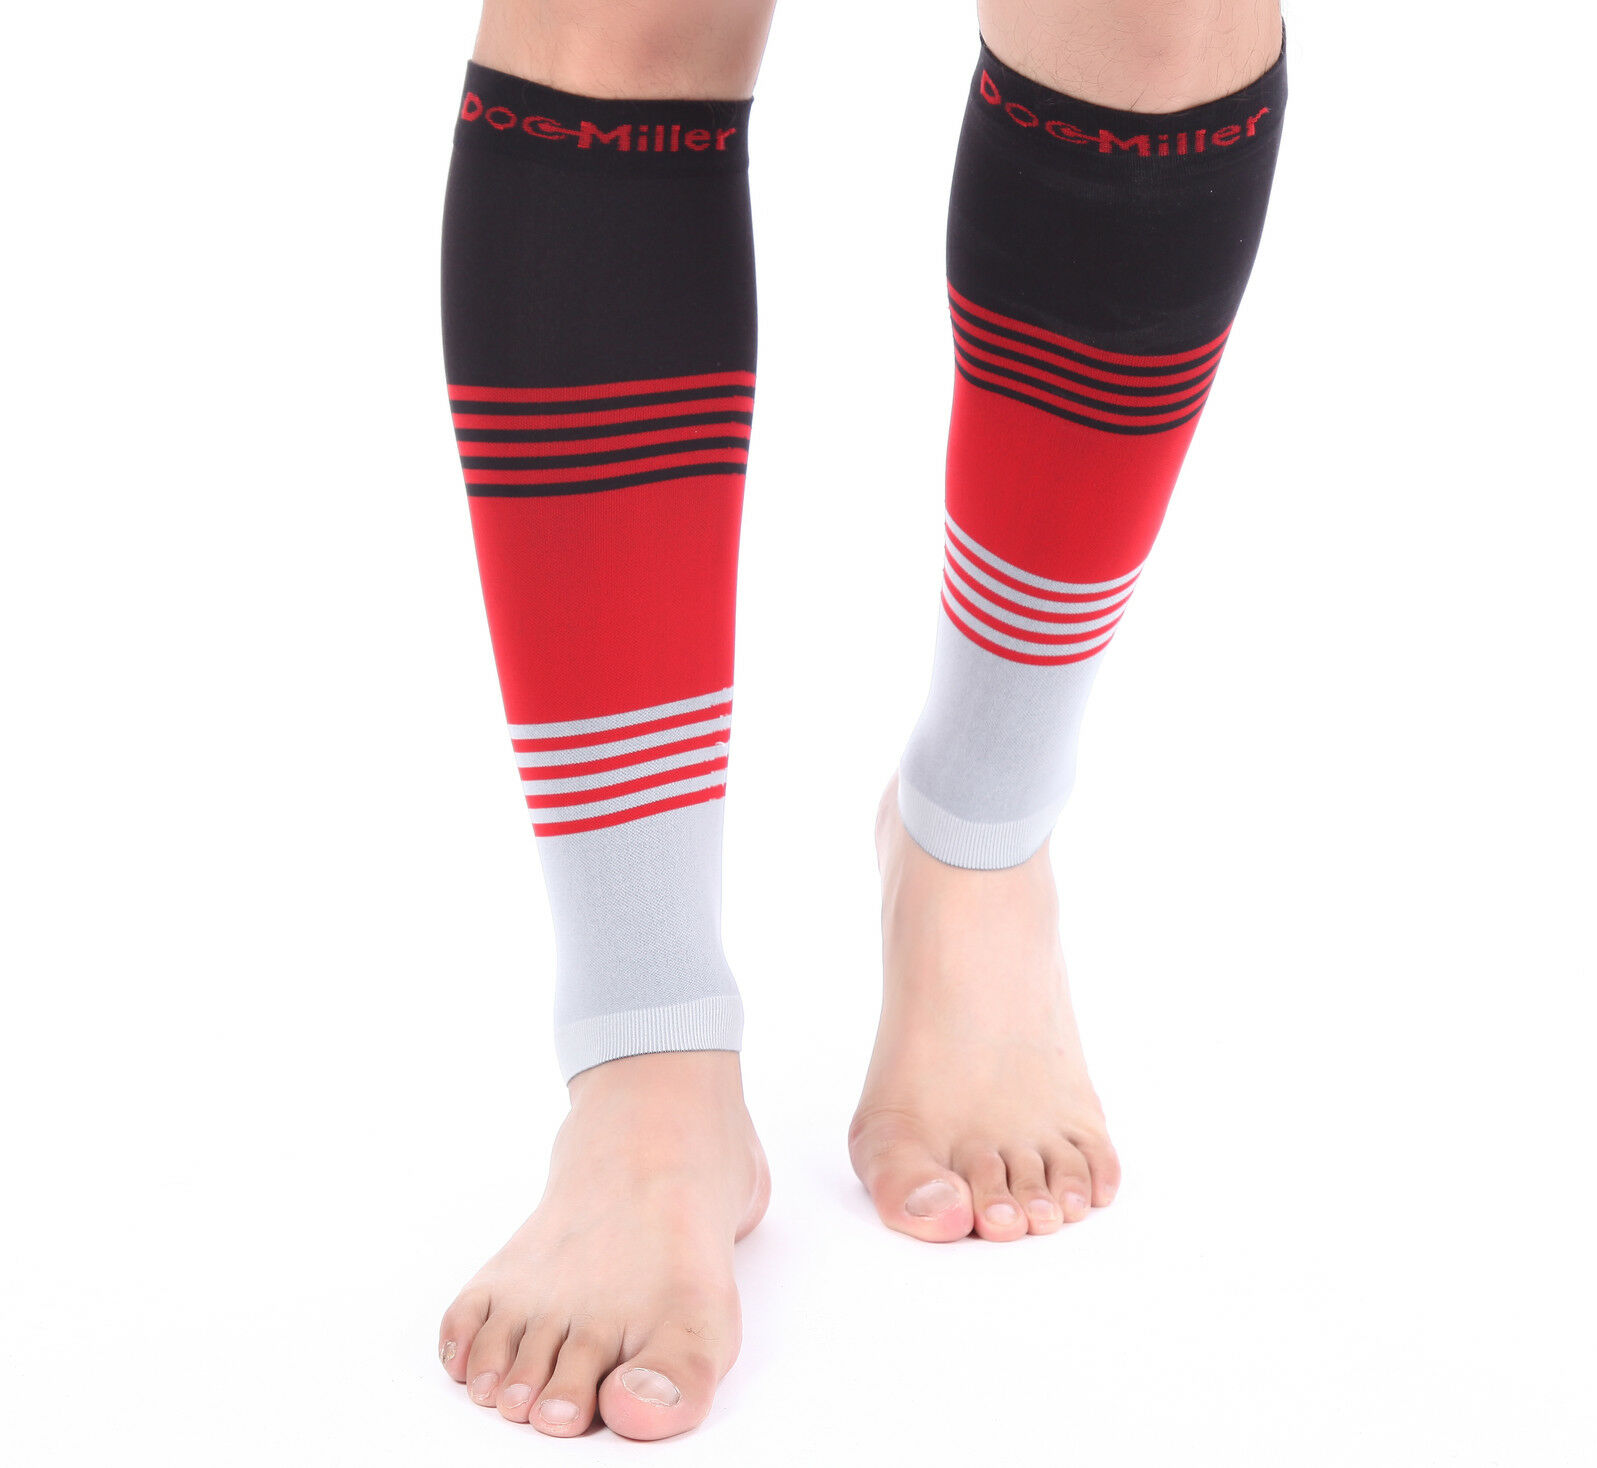 b27d3b3ccd9 Doc Miller Calf Compression Sleeve 1 Pair 20-30 mmHg Varicose Veins  BLACK RED GRAY